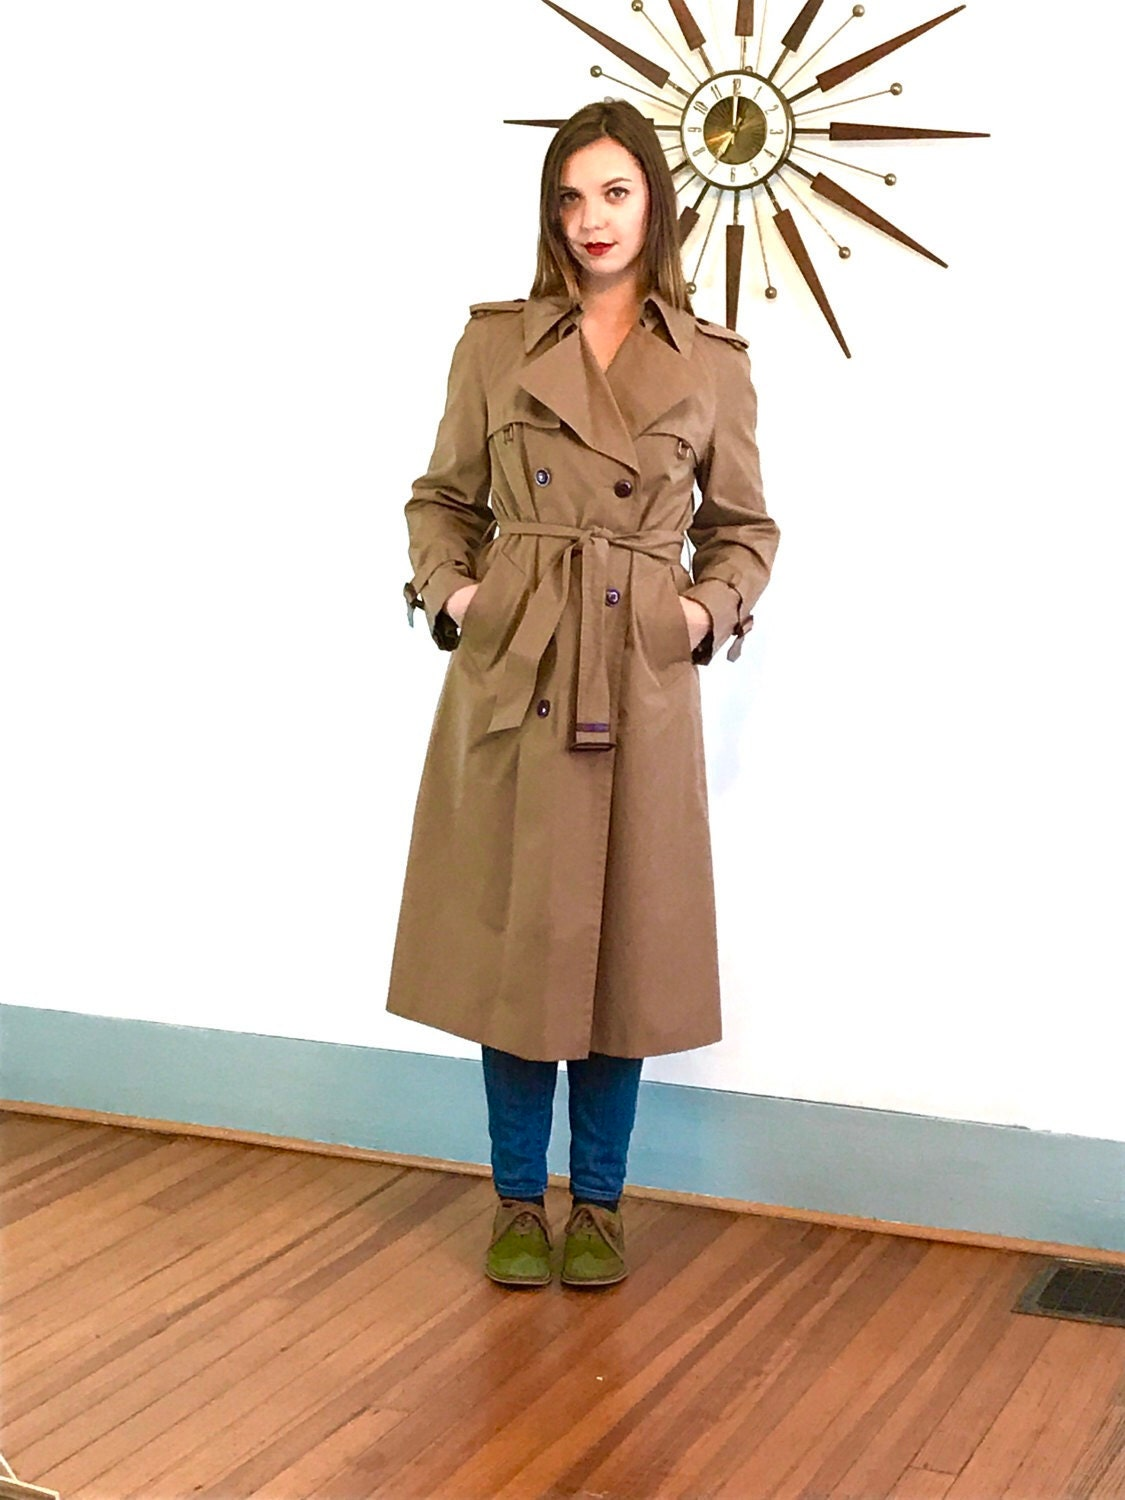 https://www.etsy.com/listing/516329199/vintage-70s-etiene-aigner-trench-coat?ref=shop_home_active_4